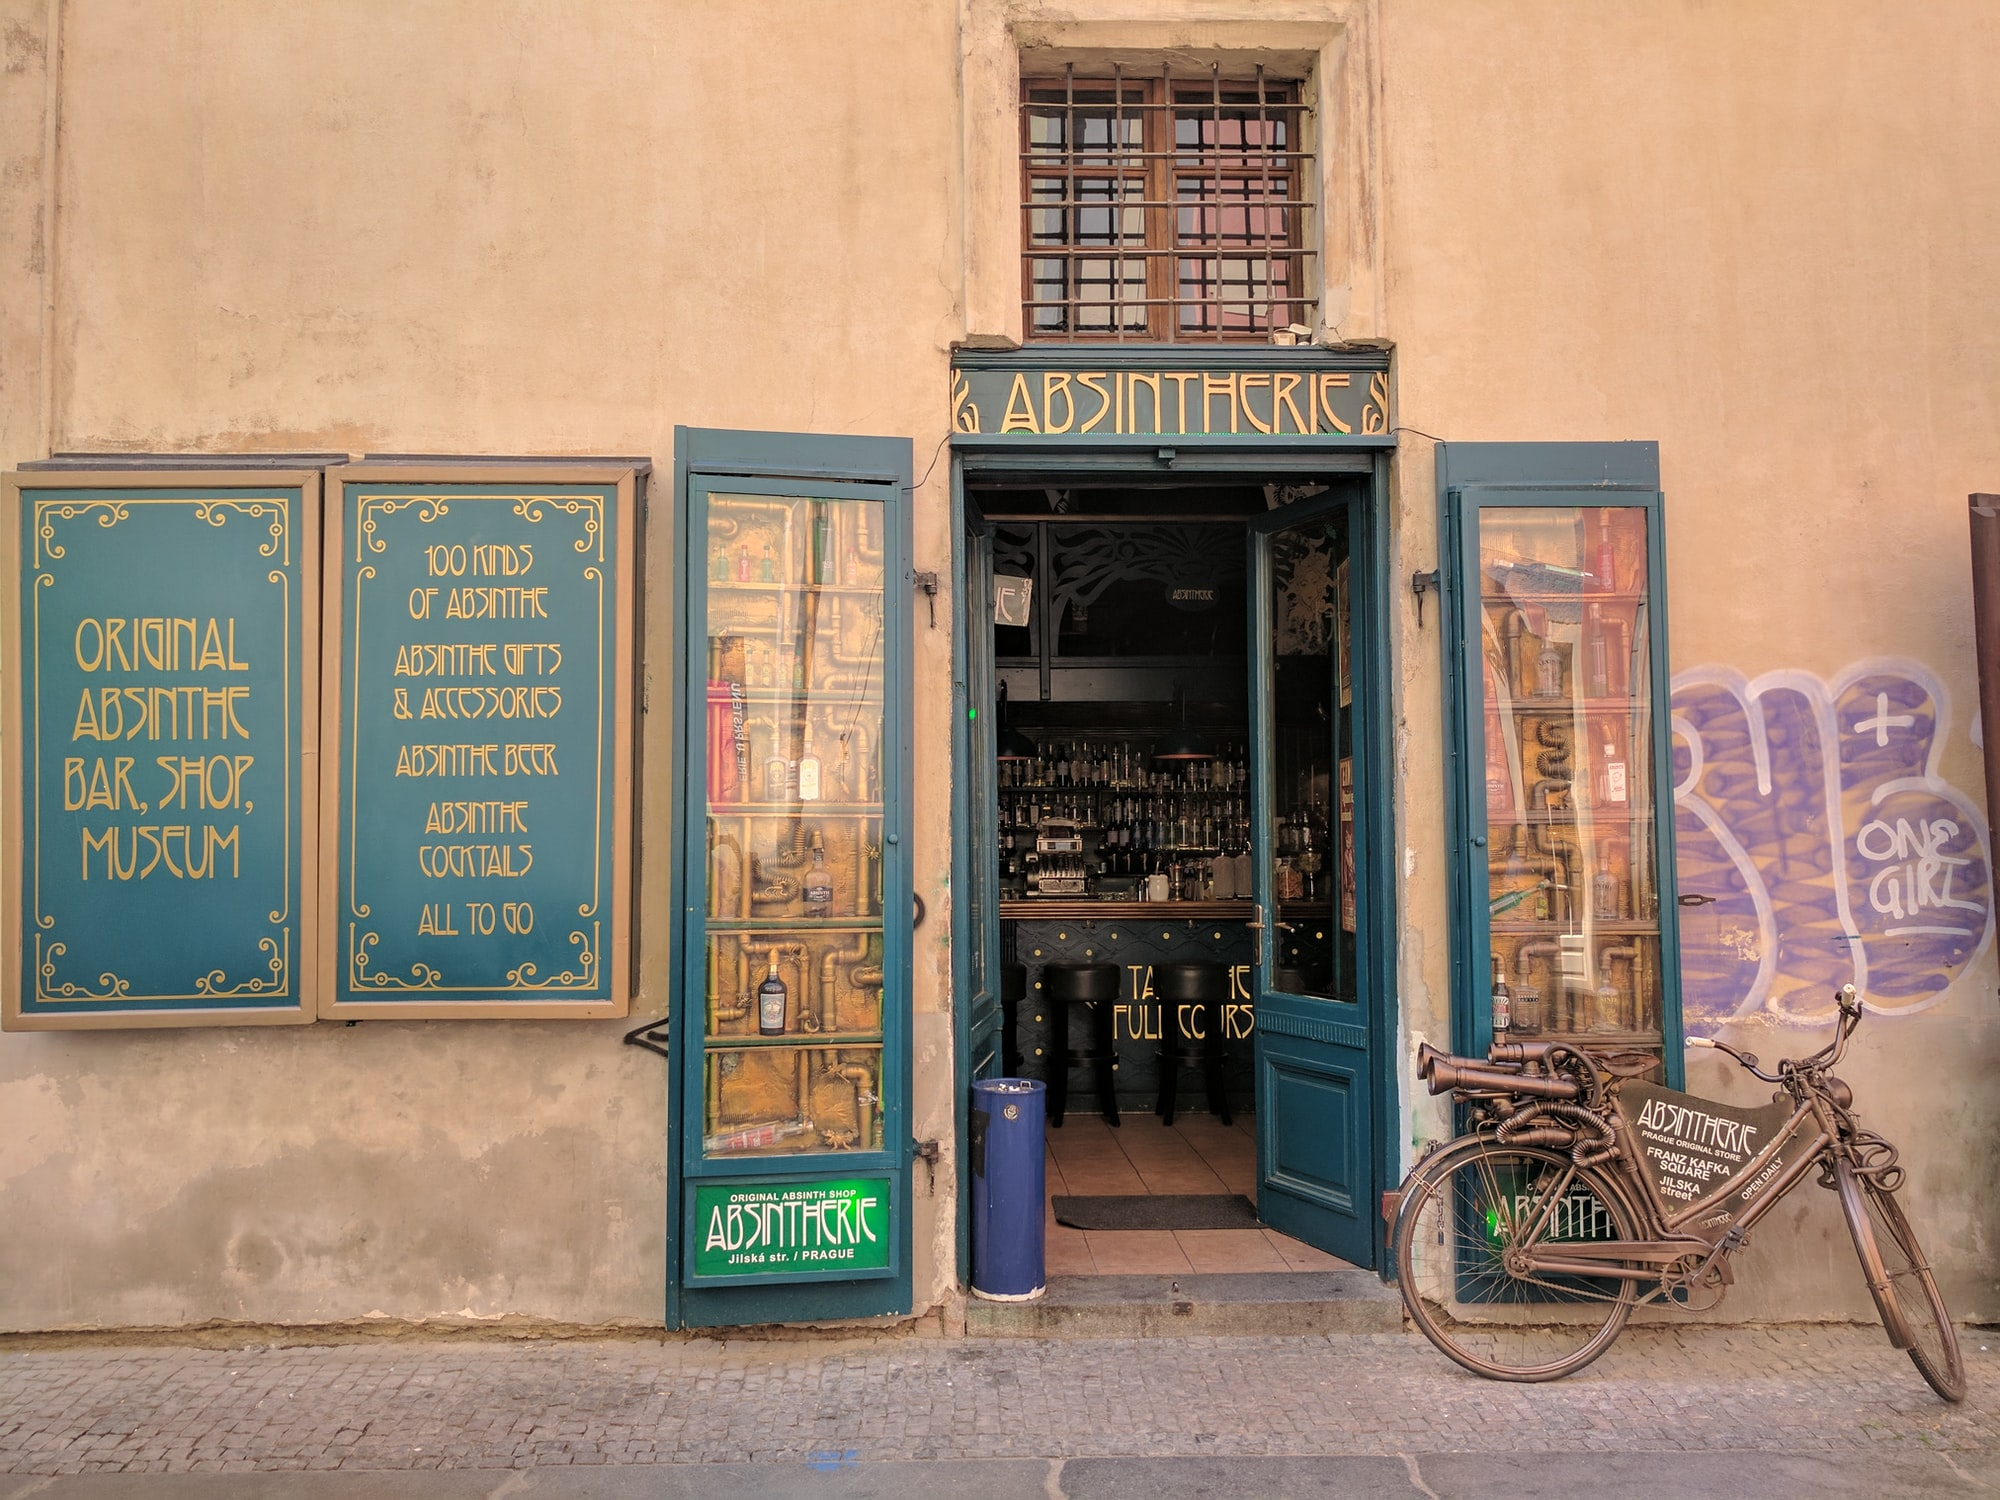 Absintherie shopfront with steampunk bicycle